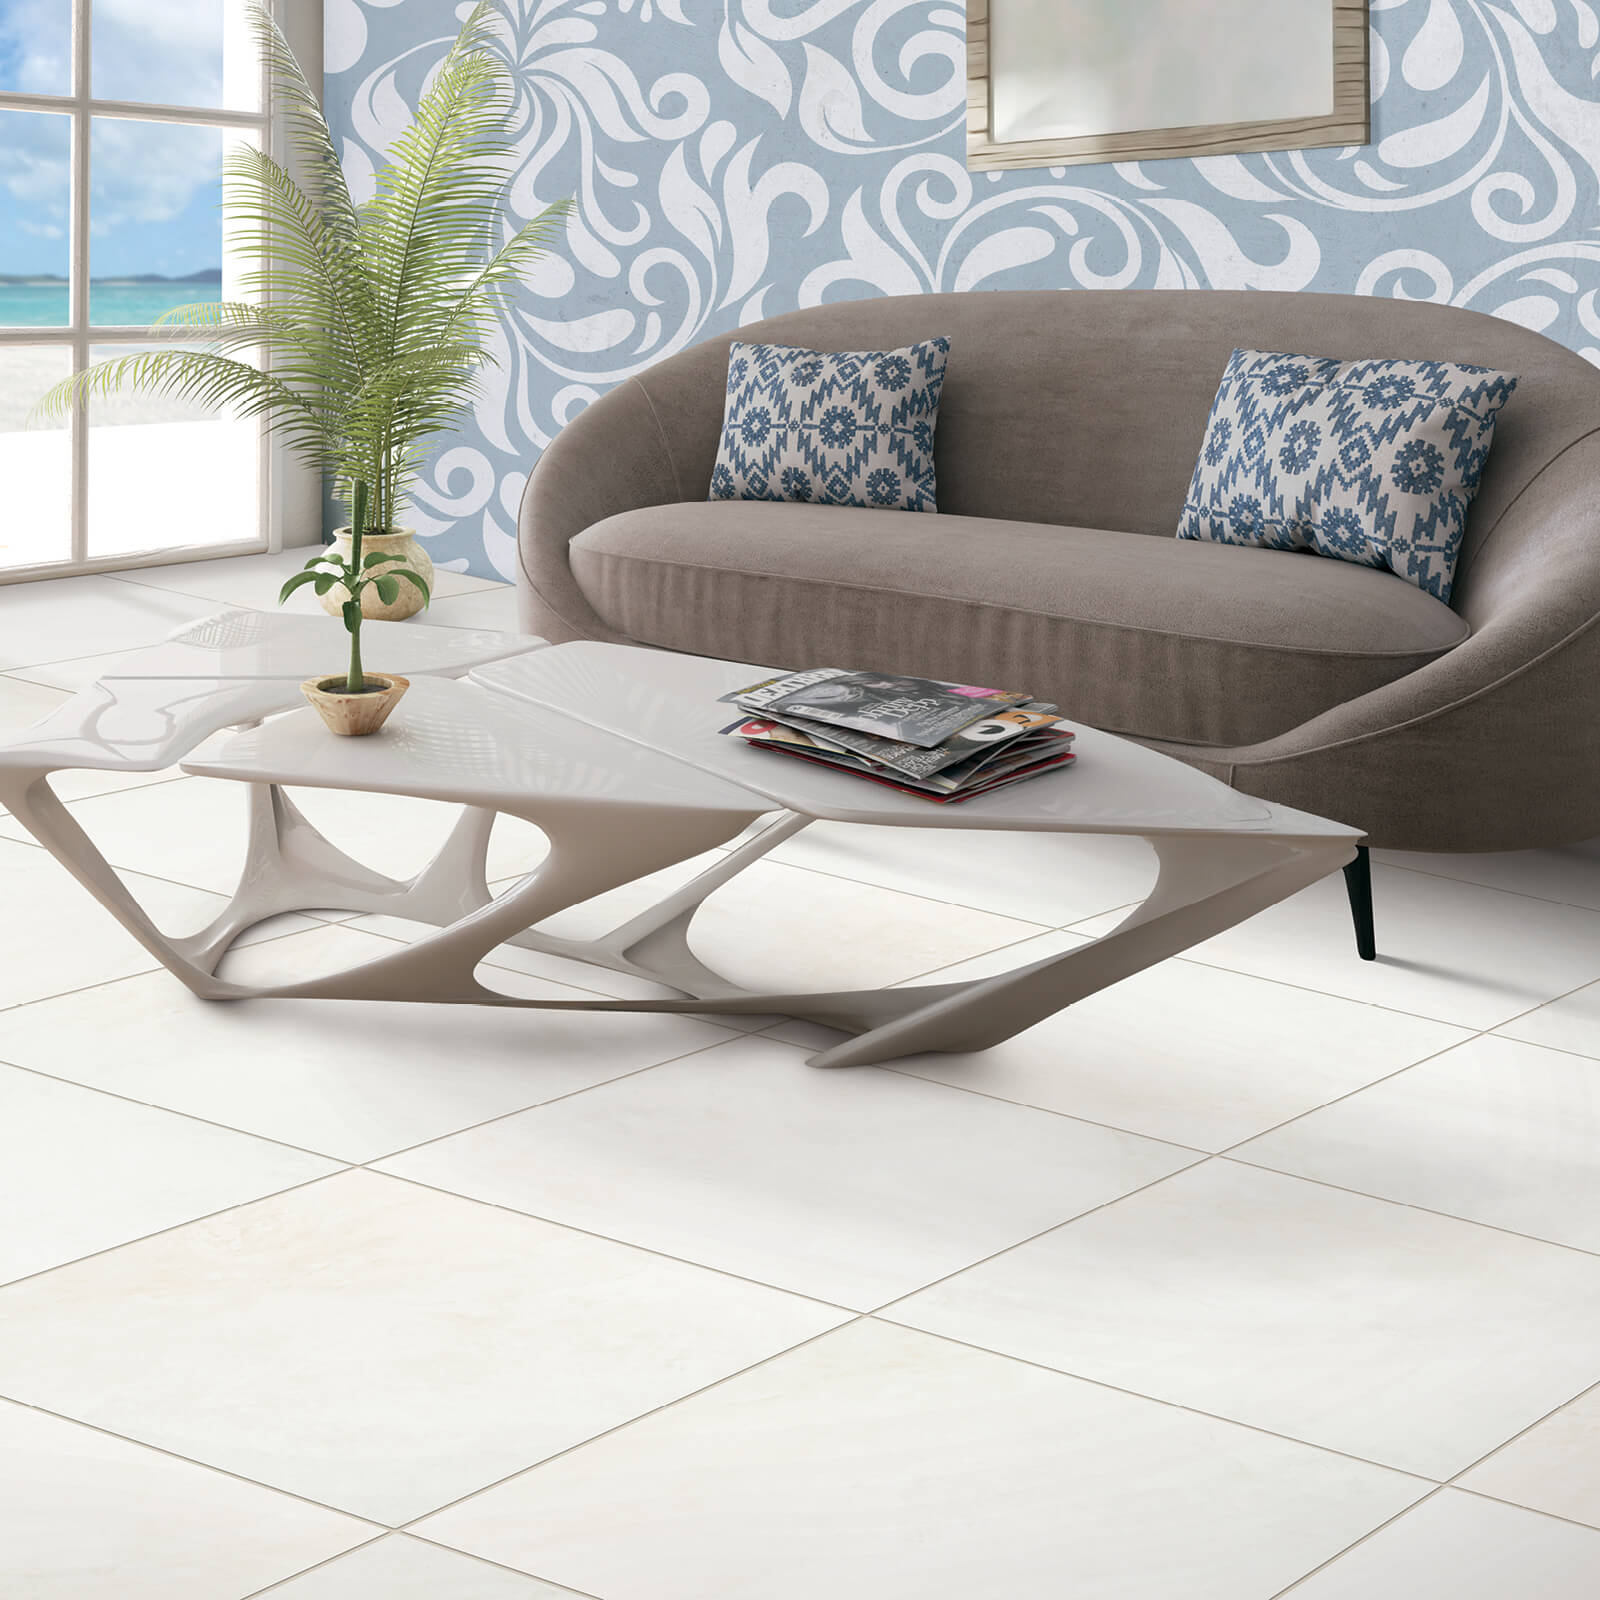 Winter Park Beige | Andy's 5 Star Flooring